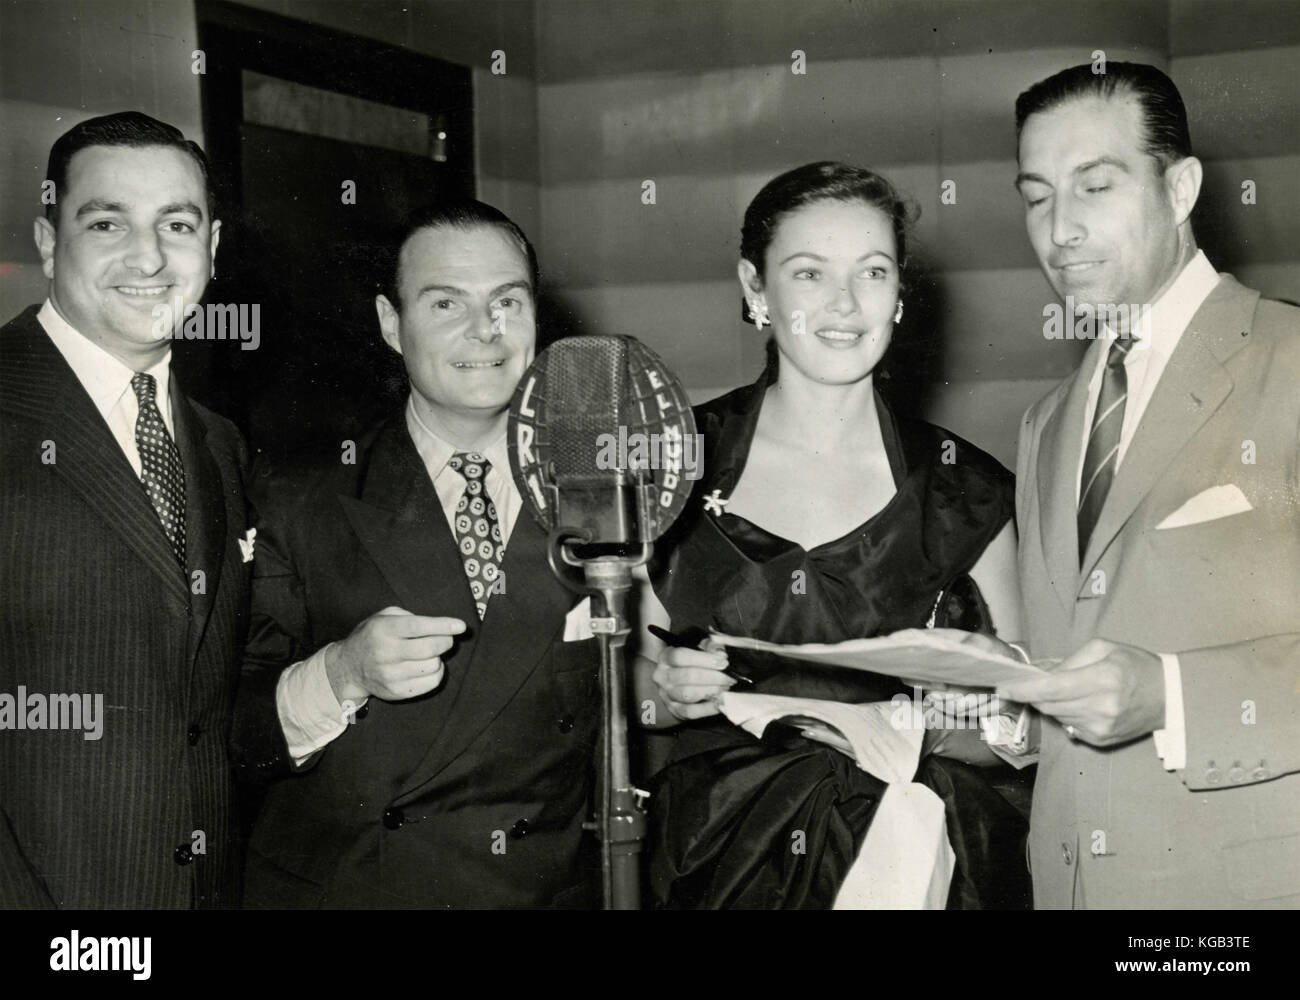 American actress Gene Tierney speaks at the microphone - Stock Image